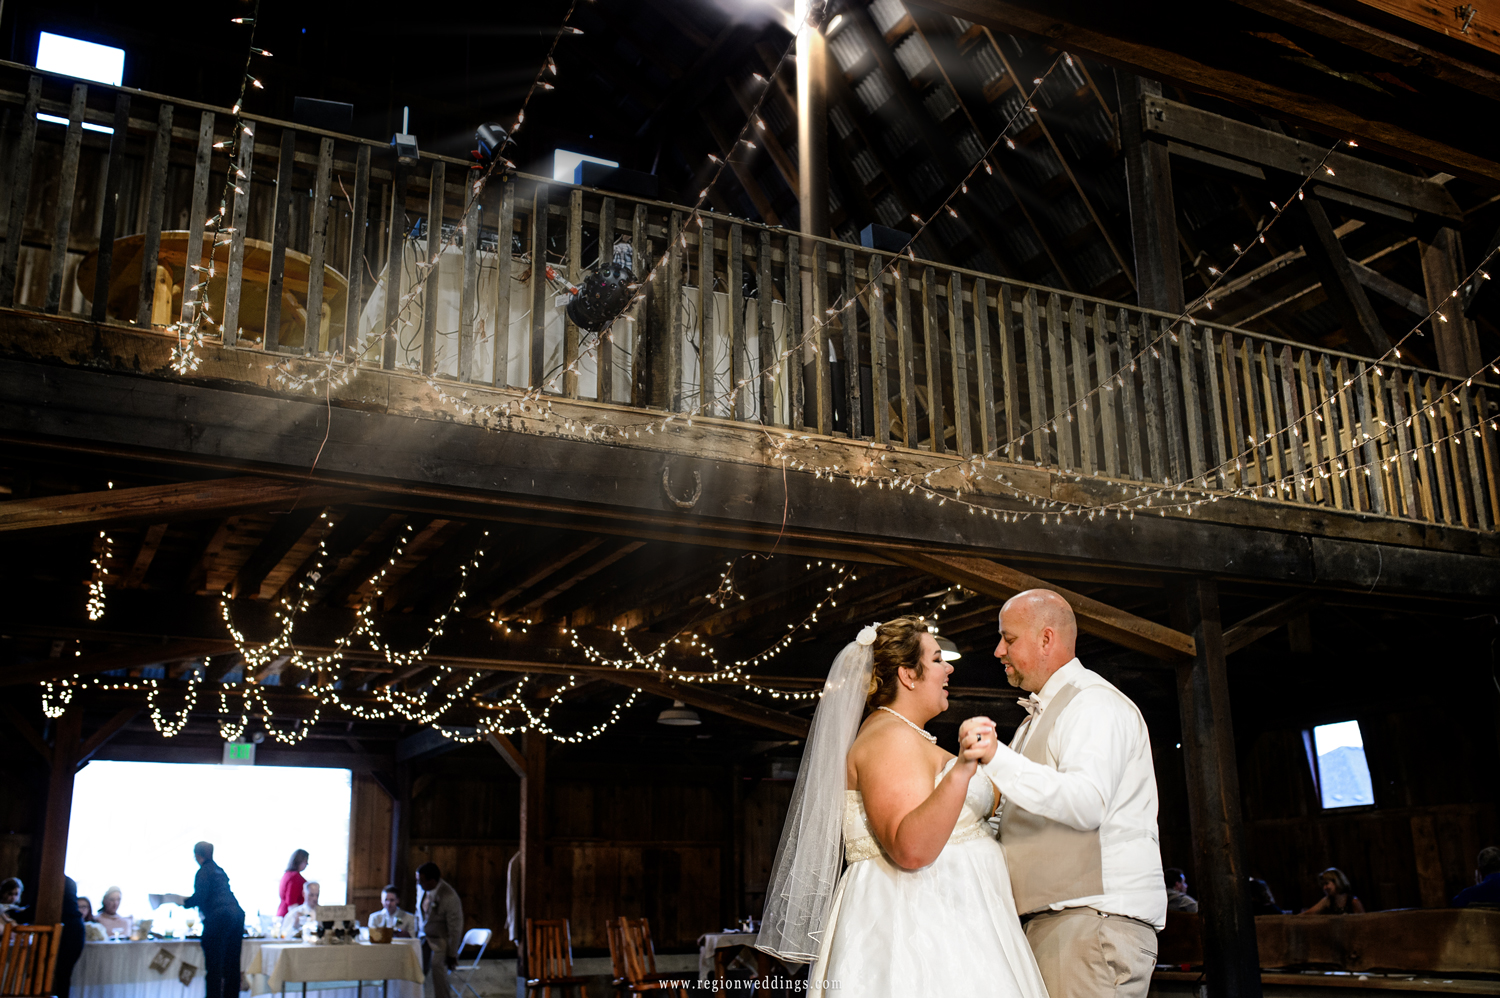 First dance inside the rustic red barn in Crown Point, Indiana.